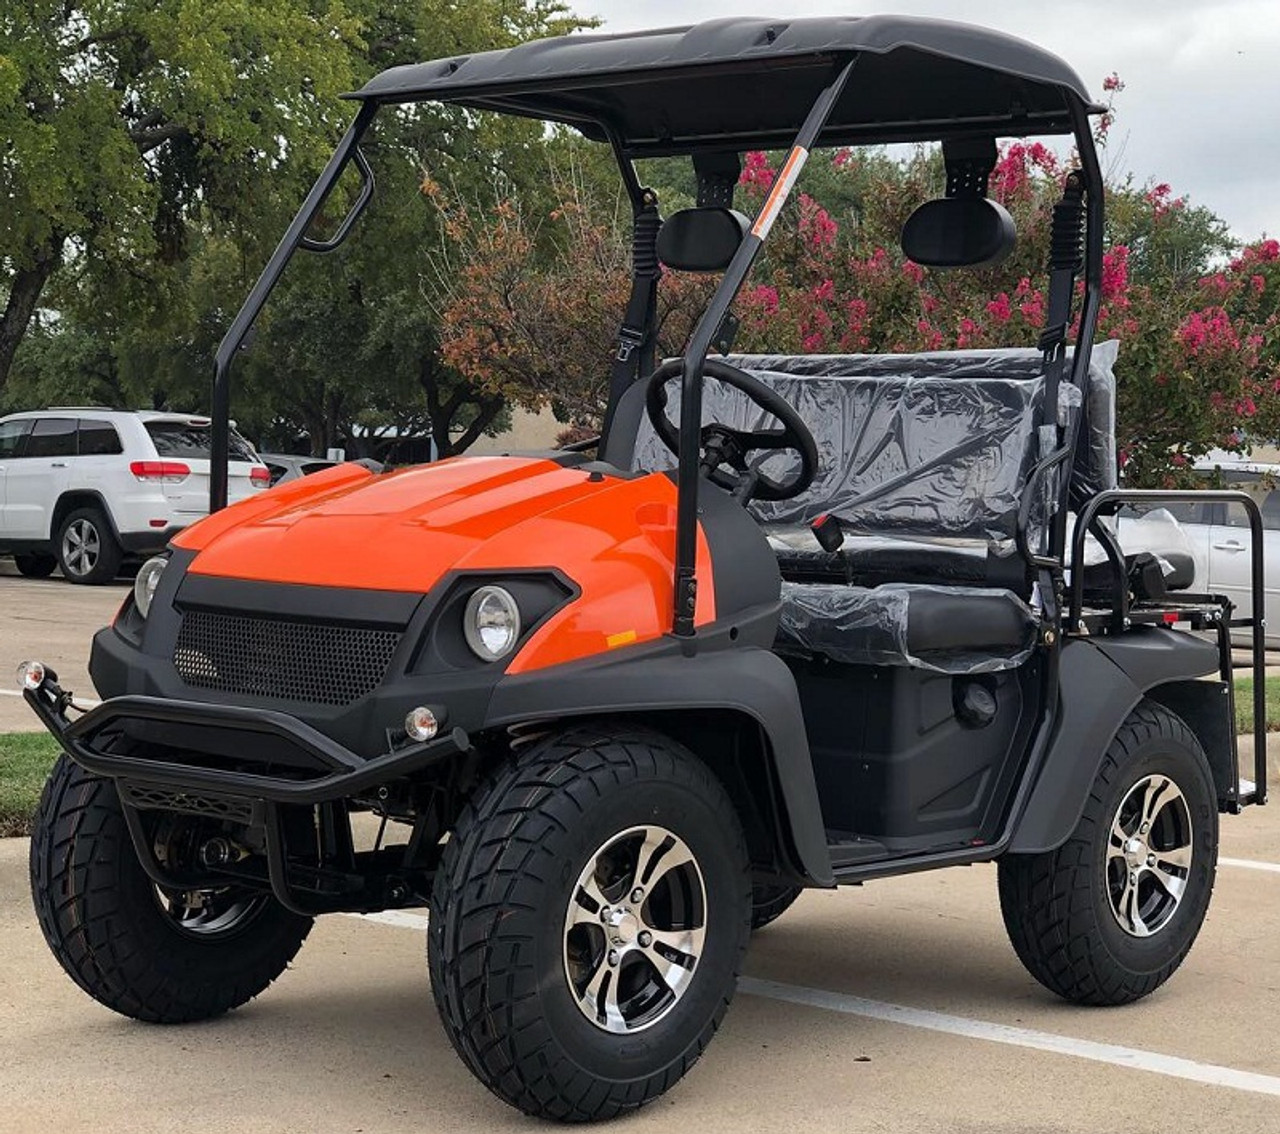 Orange - Fully Loaded Cazador OUTFITTER 200 Golf Cart 4 Seater Street Legal UTV